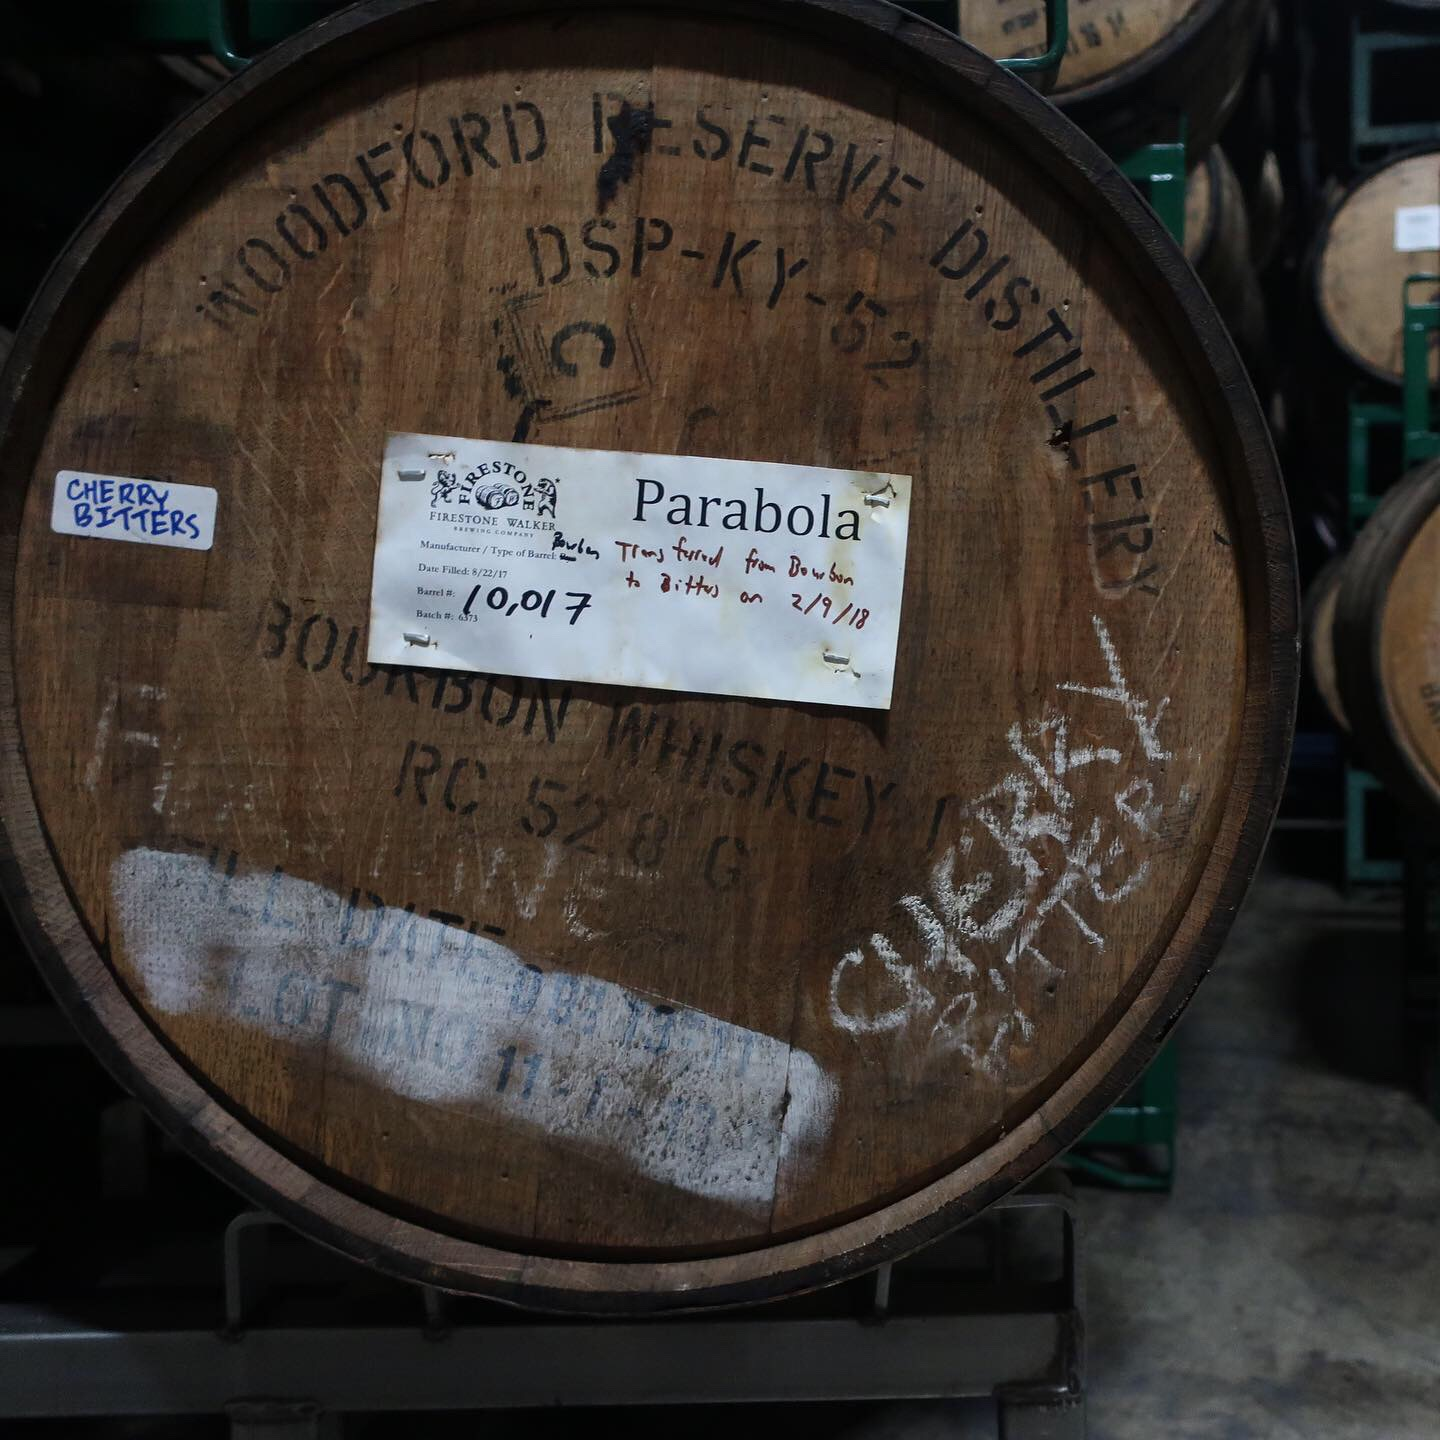 A former Woodford Reserve barrel that aged Parabola on cherry bitters at Firestone Walker Brewing. This went on to be used in Old Man Hattan